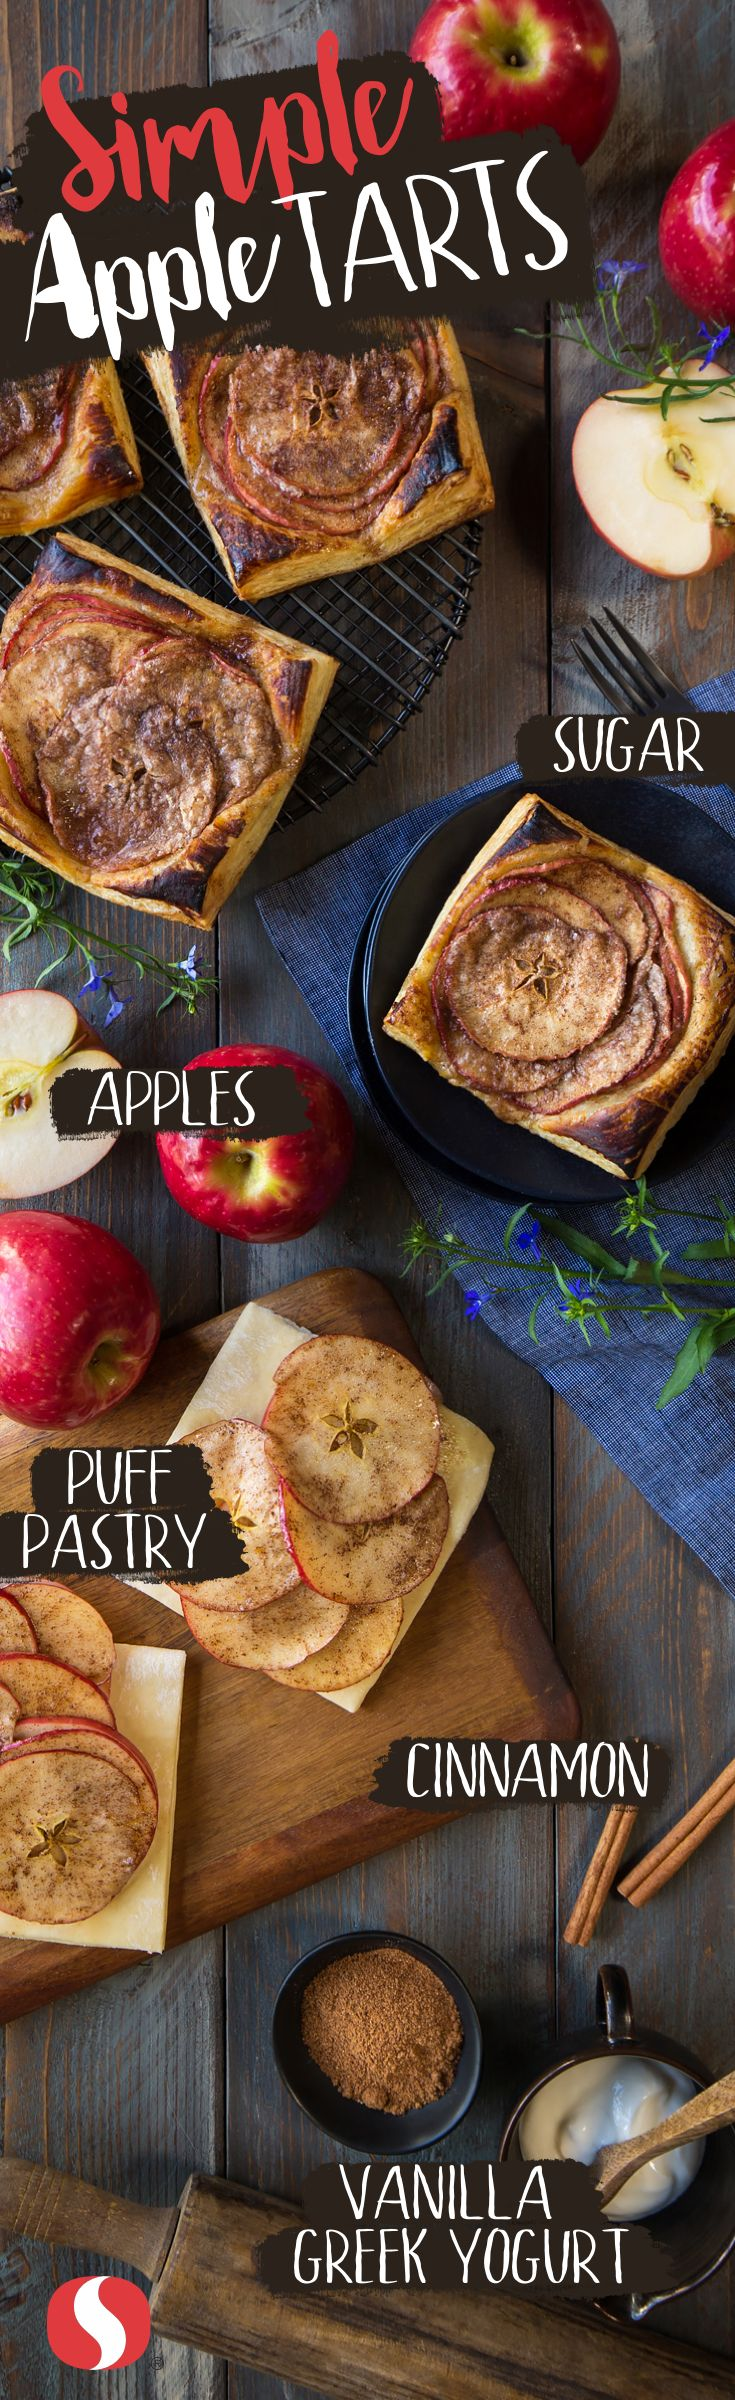 Simplify apple tarts with this quick and easy recipe! For perfectly juicy and glazed tarts, allow the tart to come to room temperature before serving this Labor Day.